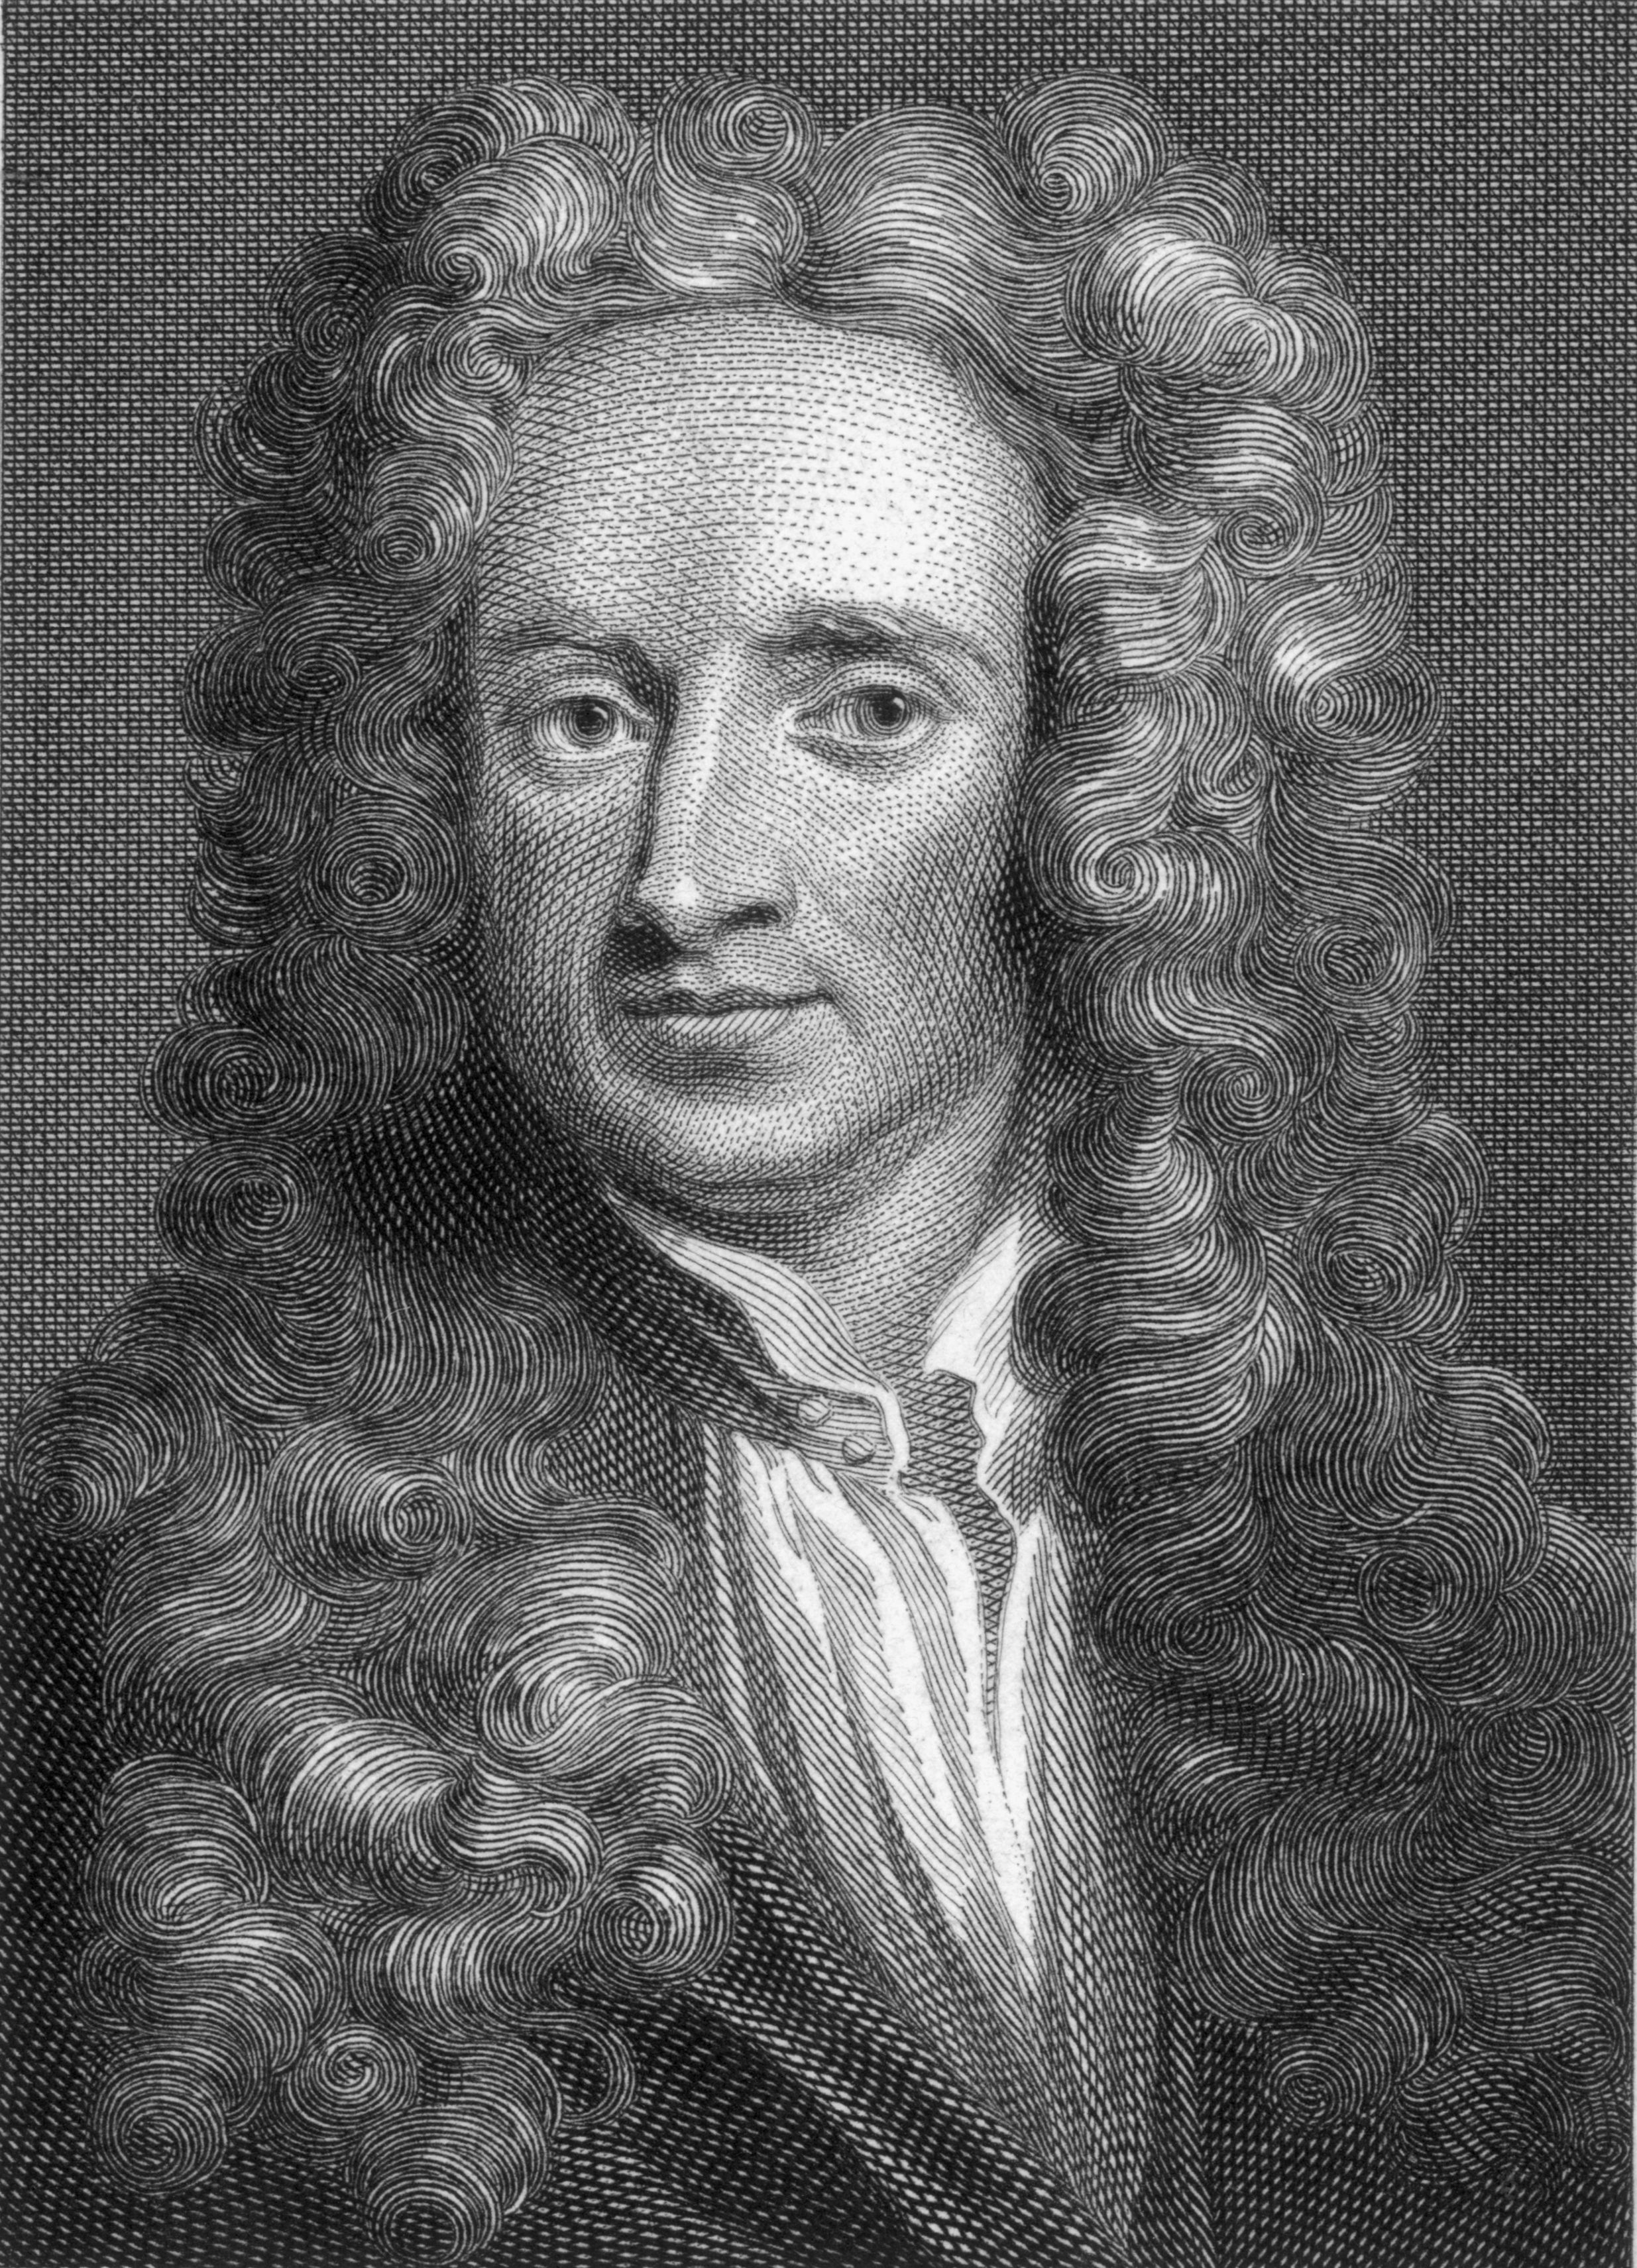 sir isaac newton 1642 1727 invented the reflecting telescope in